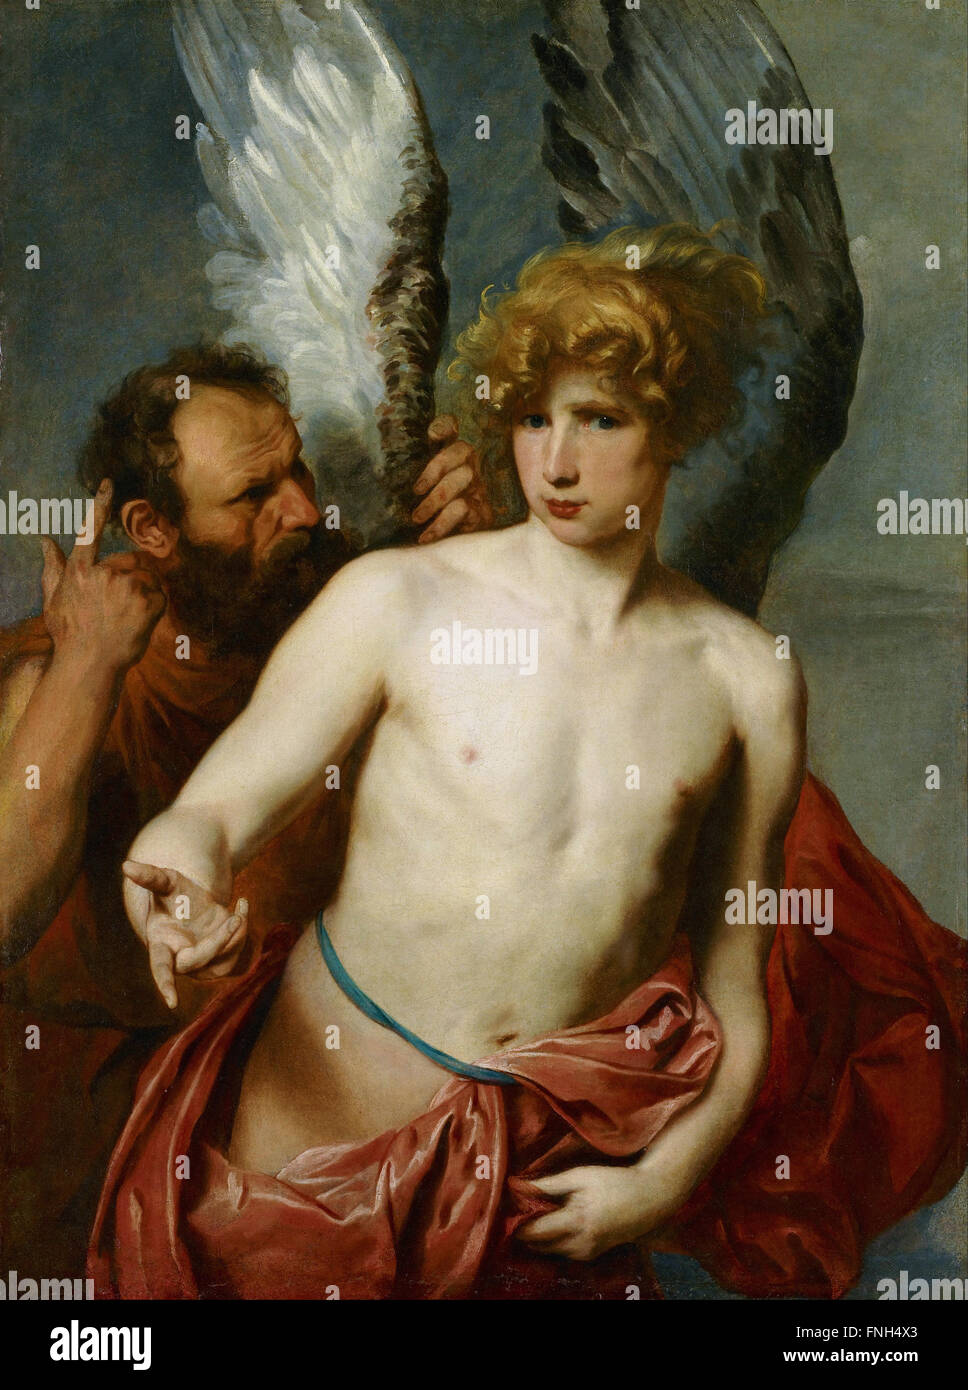 Anthony van Dyck - Daedalus and Icarus - Stock Image